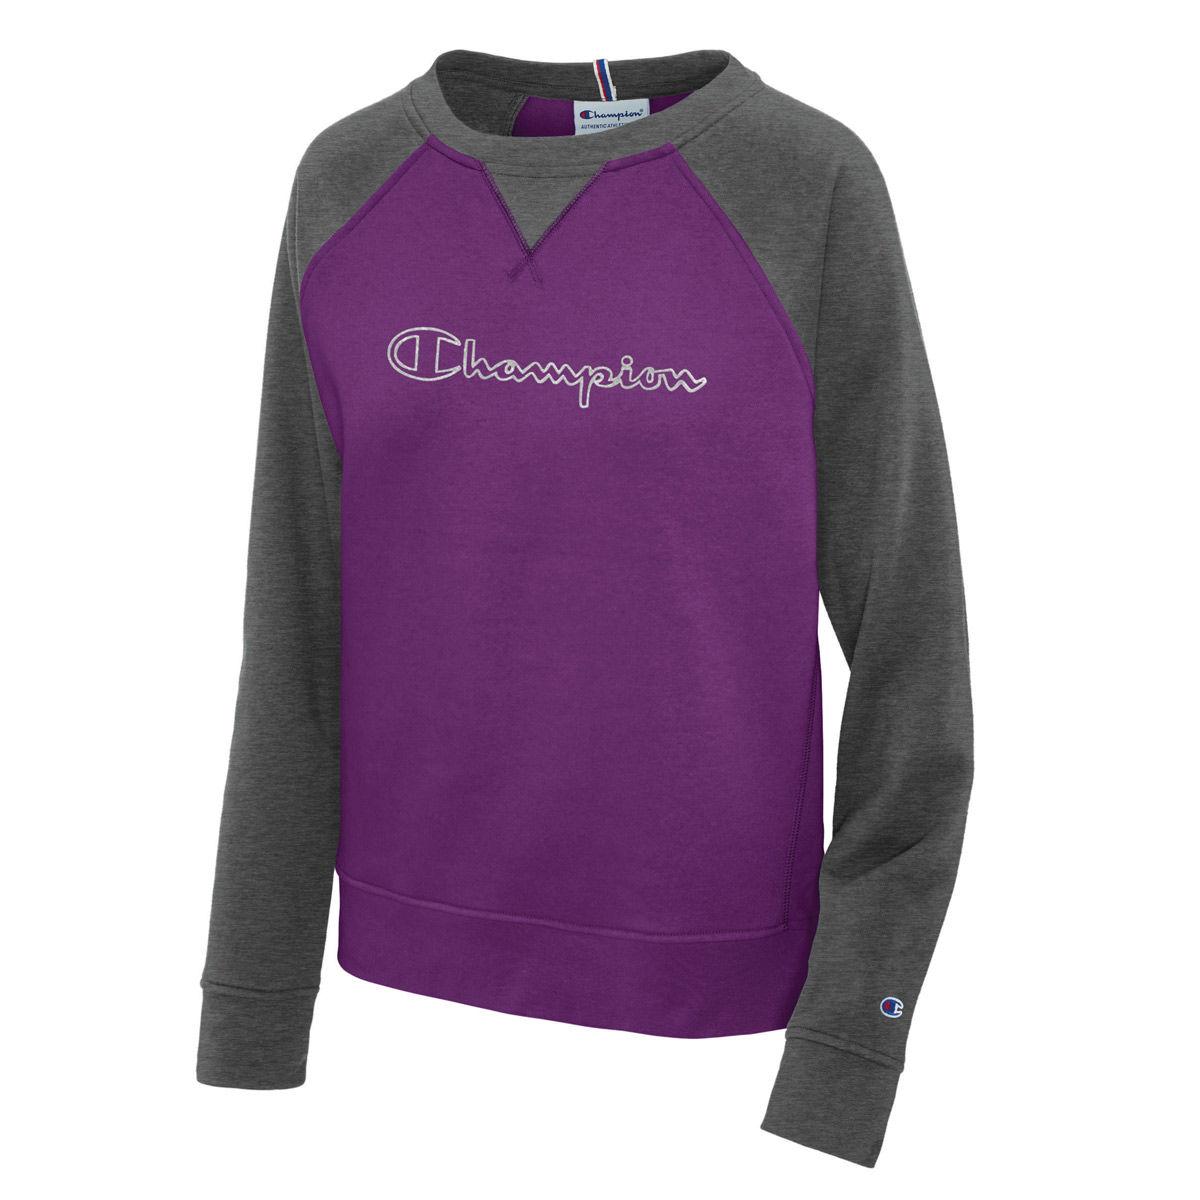 Champion Heritage Fleece Womens Crew Neck Sweatshirt